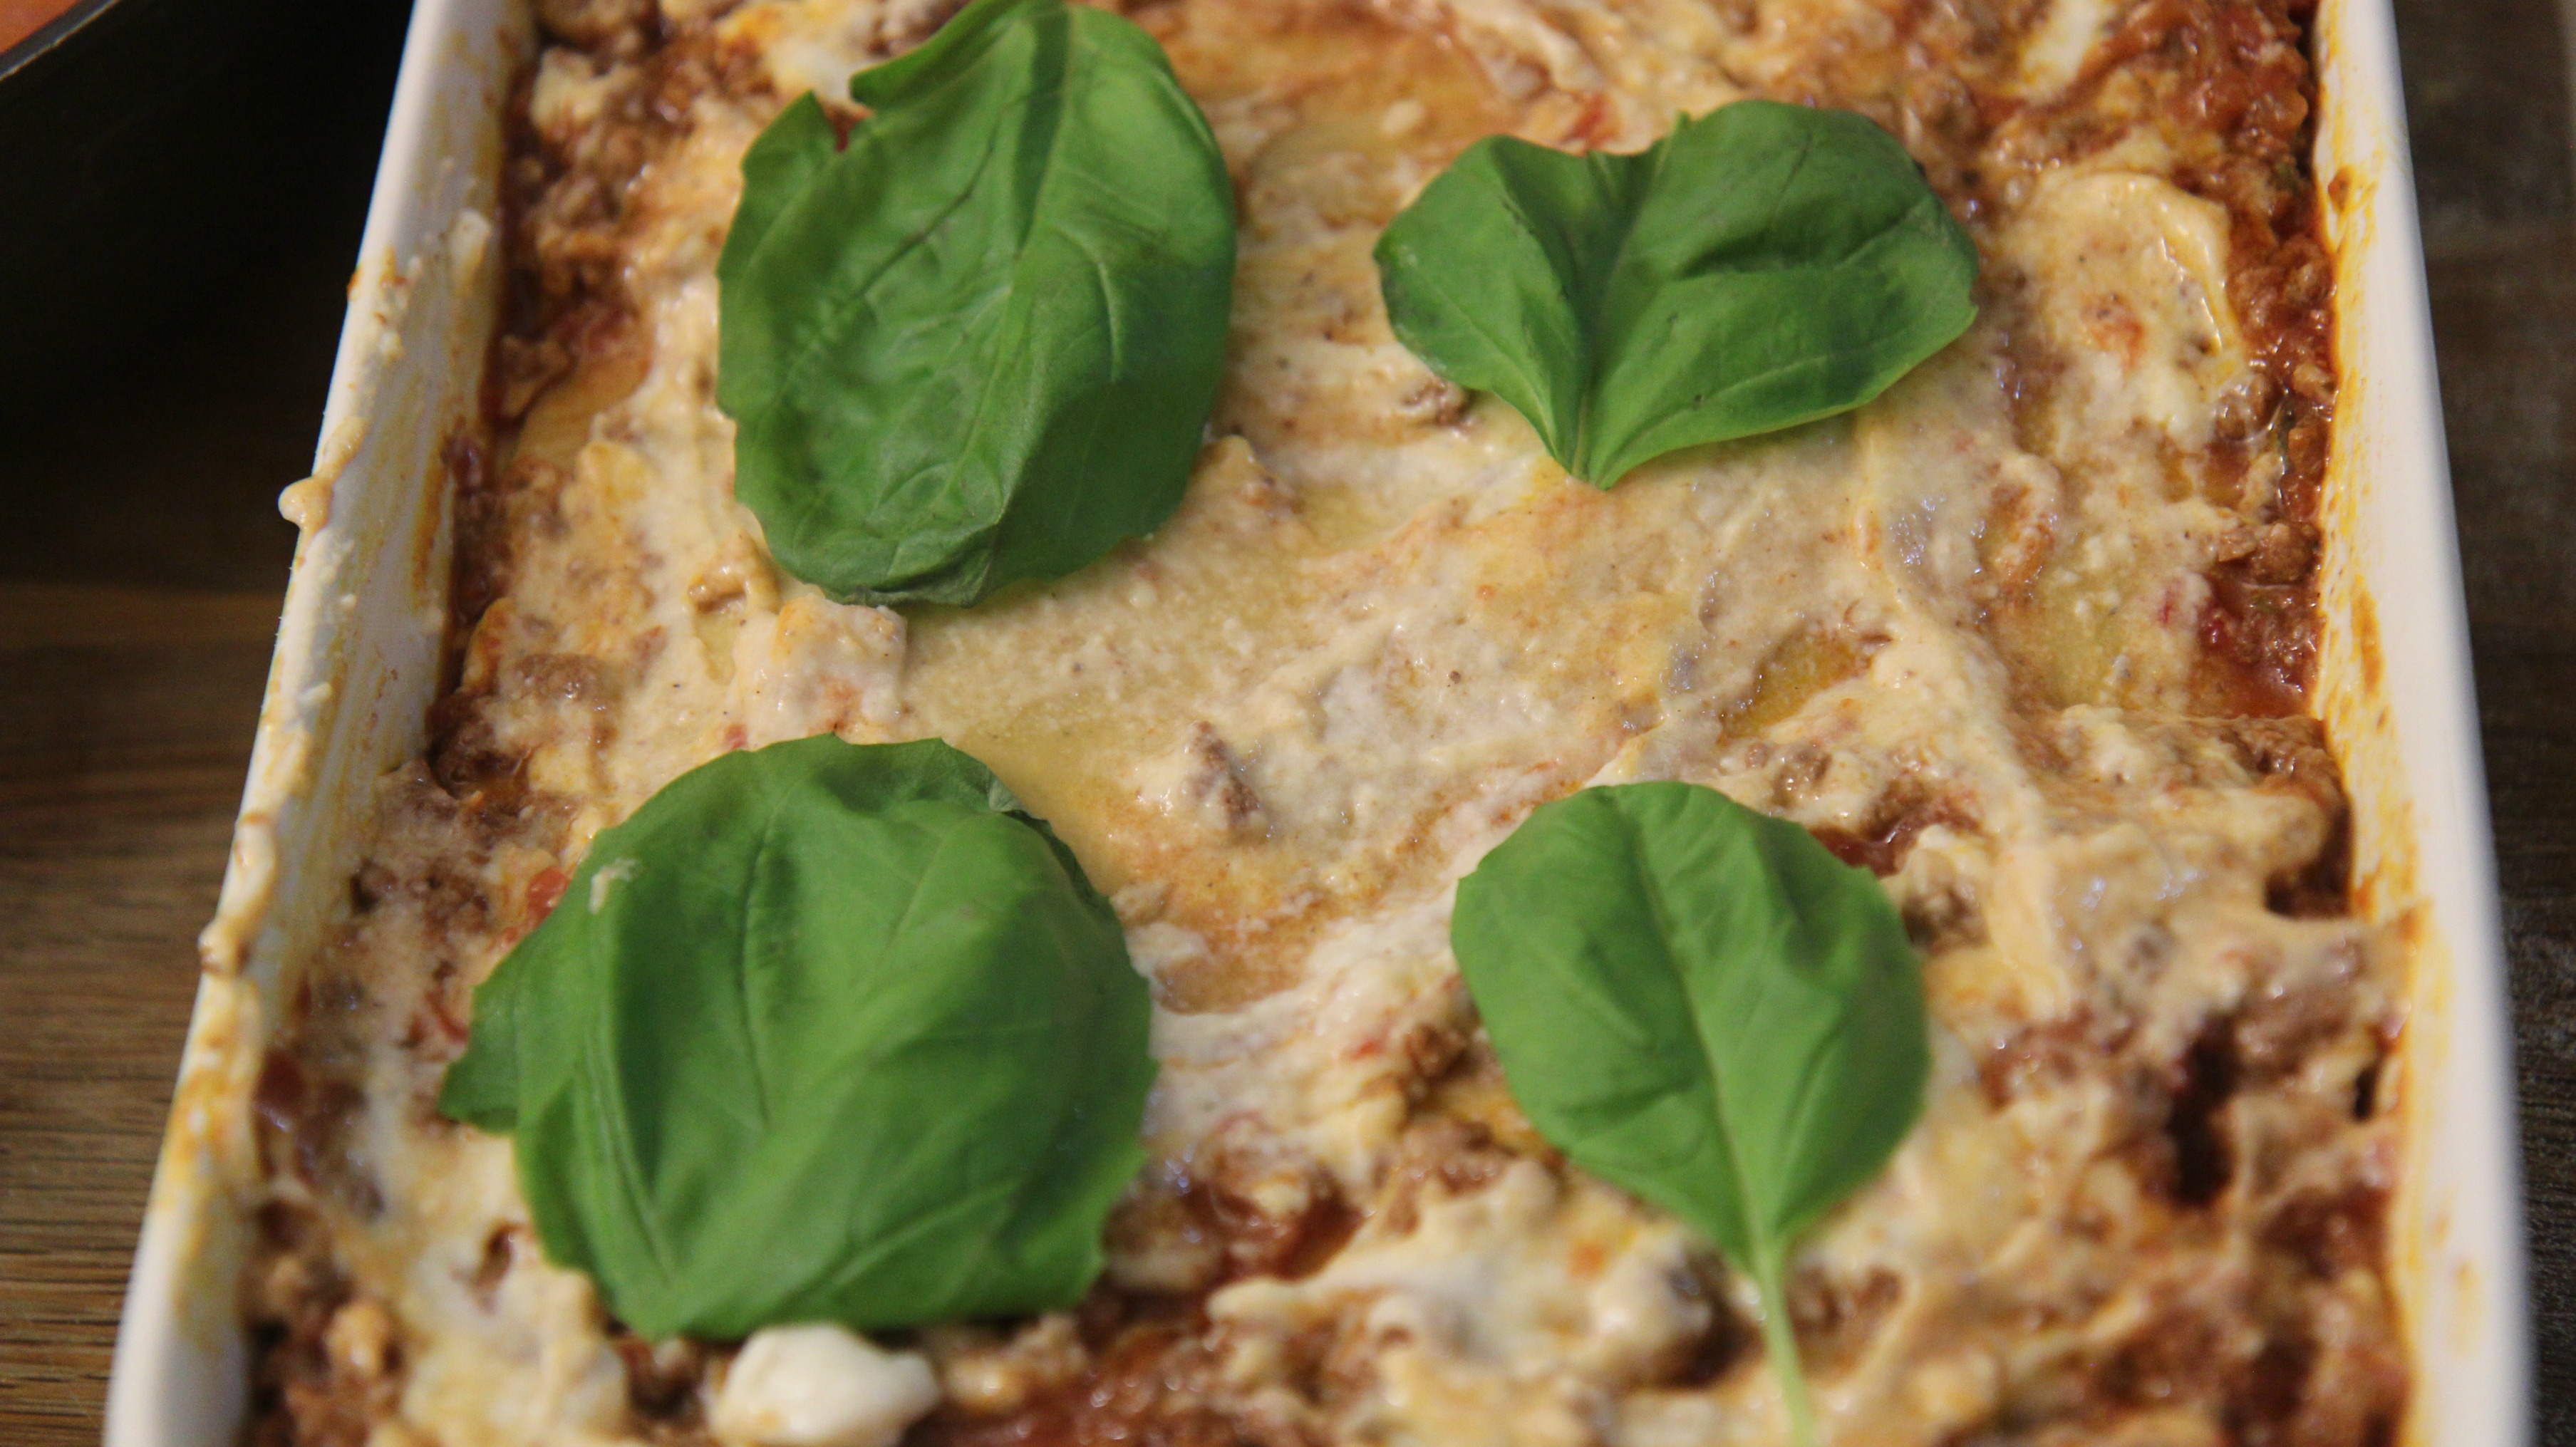 Add fresh basil under the cheese of this ultimate lasagna to add fresh flavor.